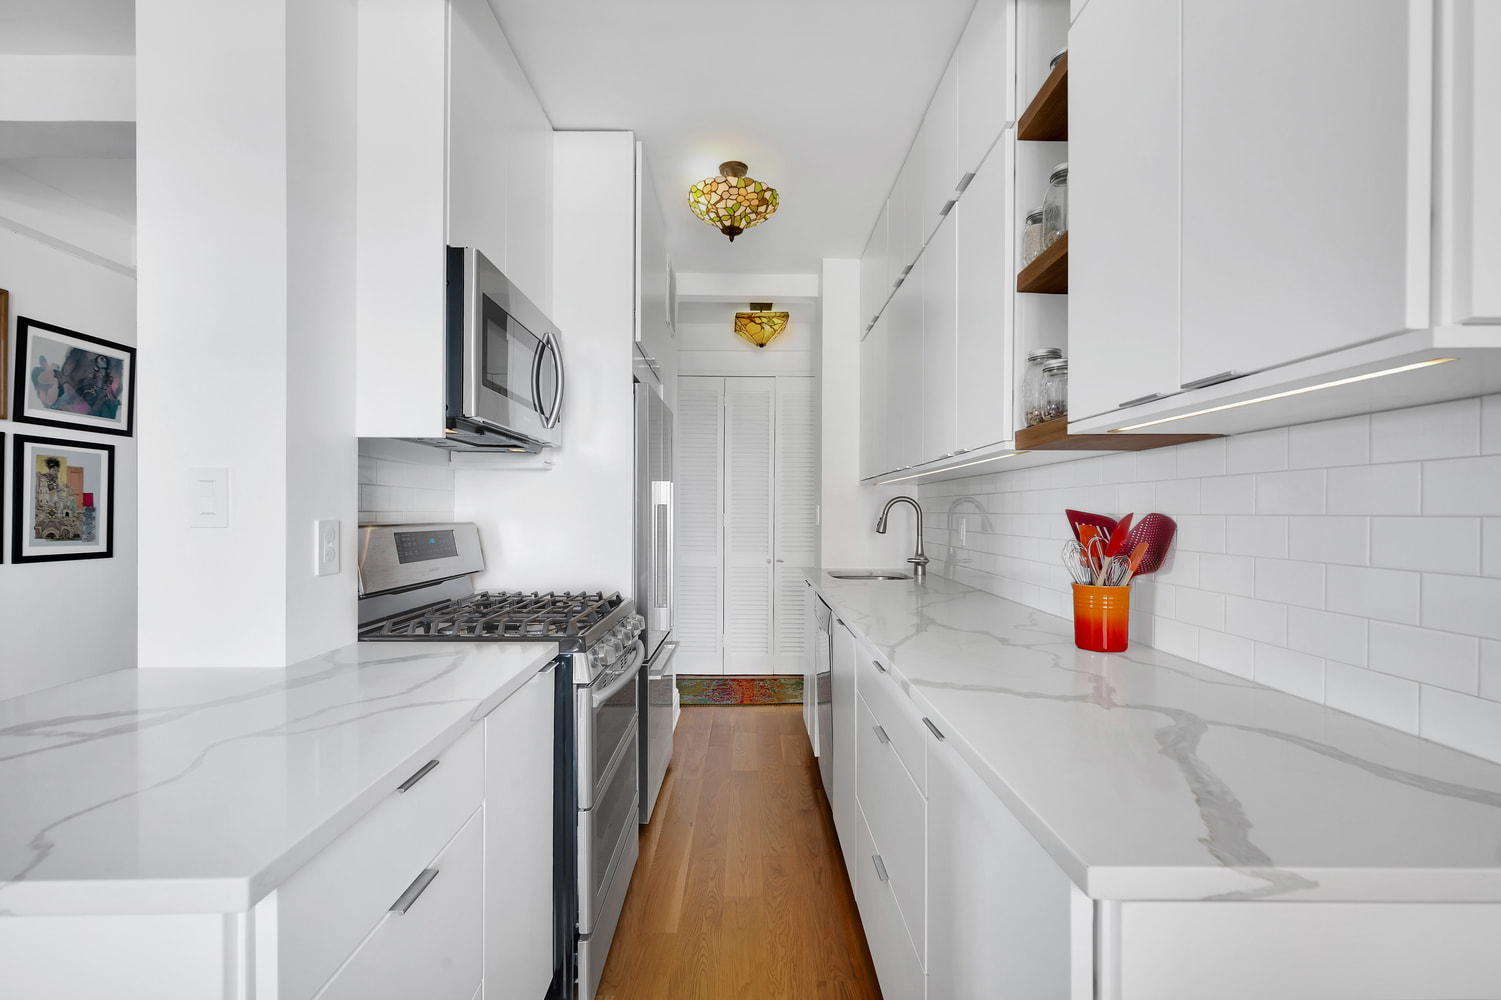 Nyc Apartment Renovation Tips Costs Per Square Foot Gallery Kitchen And Bath